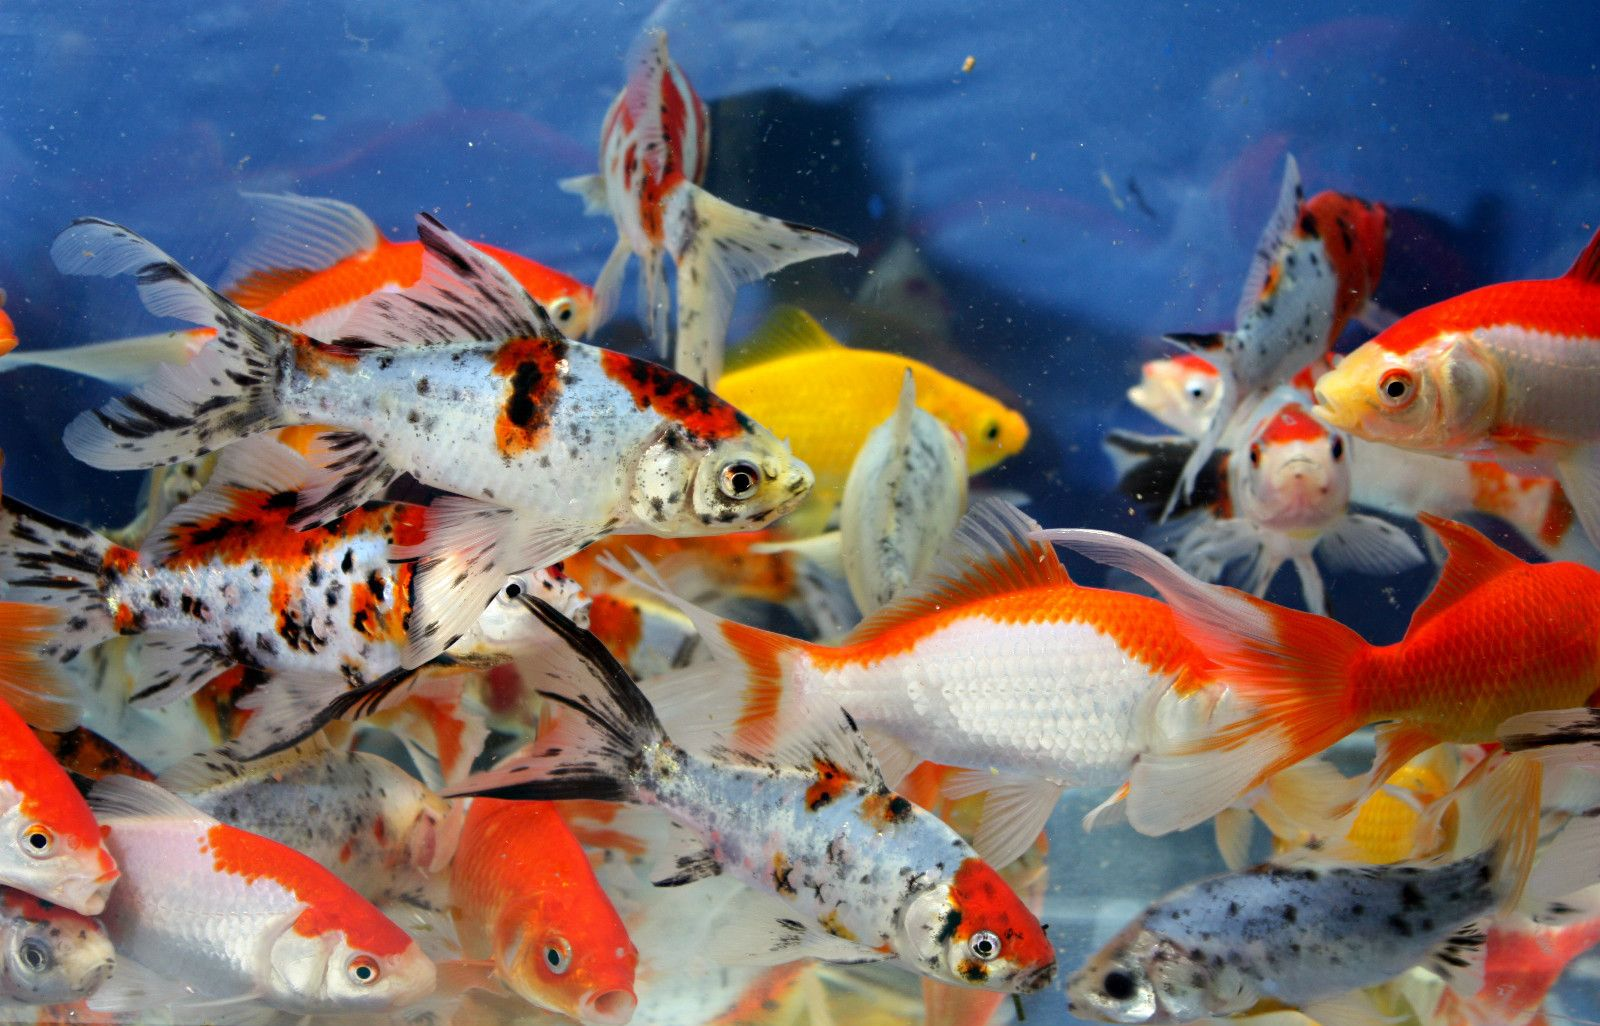 Sarasa comet goldfish live goldfish red yellow comet for Goldfisch und koi